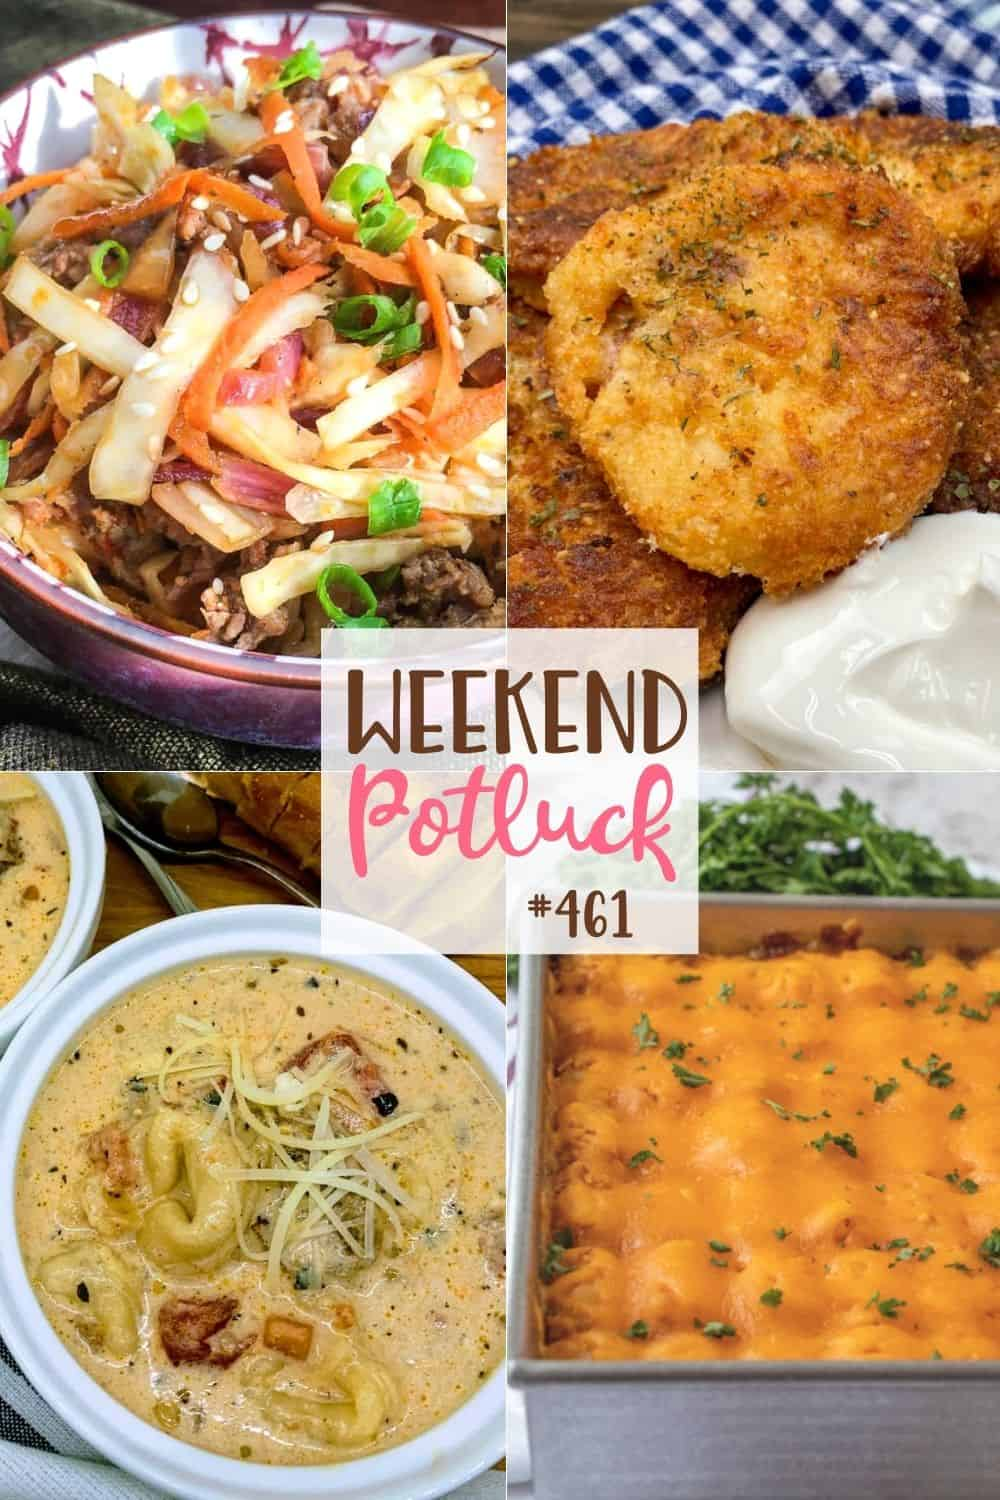 Weekend Potluck featured recipes: Mashed Potato Cakes, Egg Roll in a Bowl, Slow Cooker Creamy Tortellini & Sausage Soup, Chili Tater Tot Casserole!